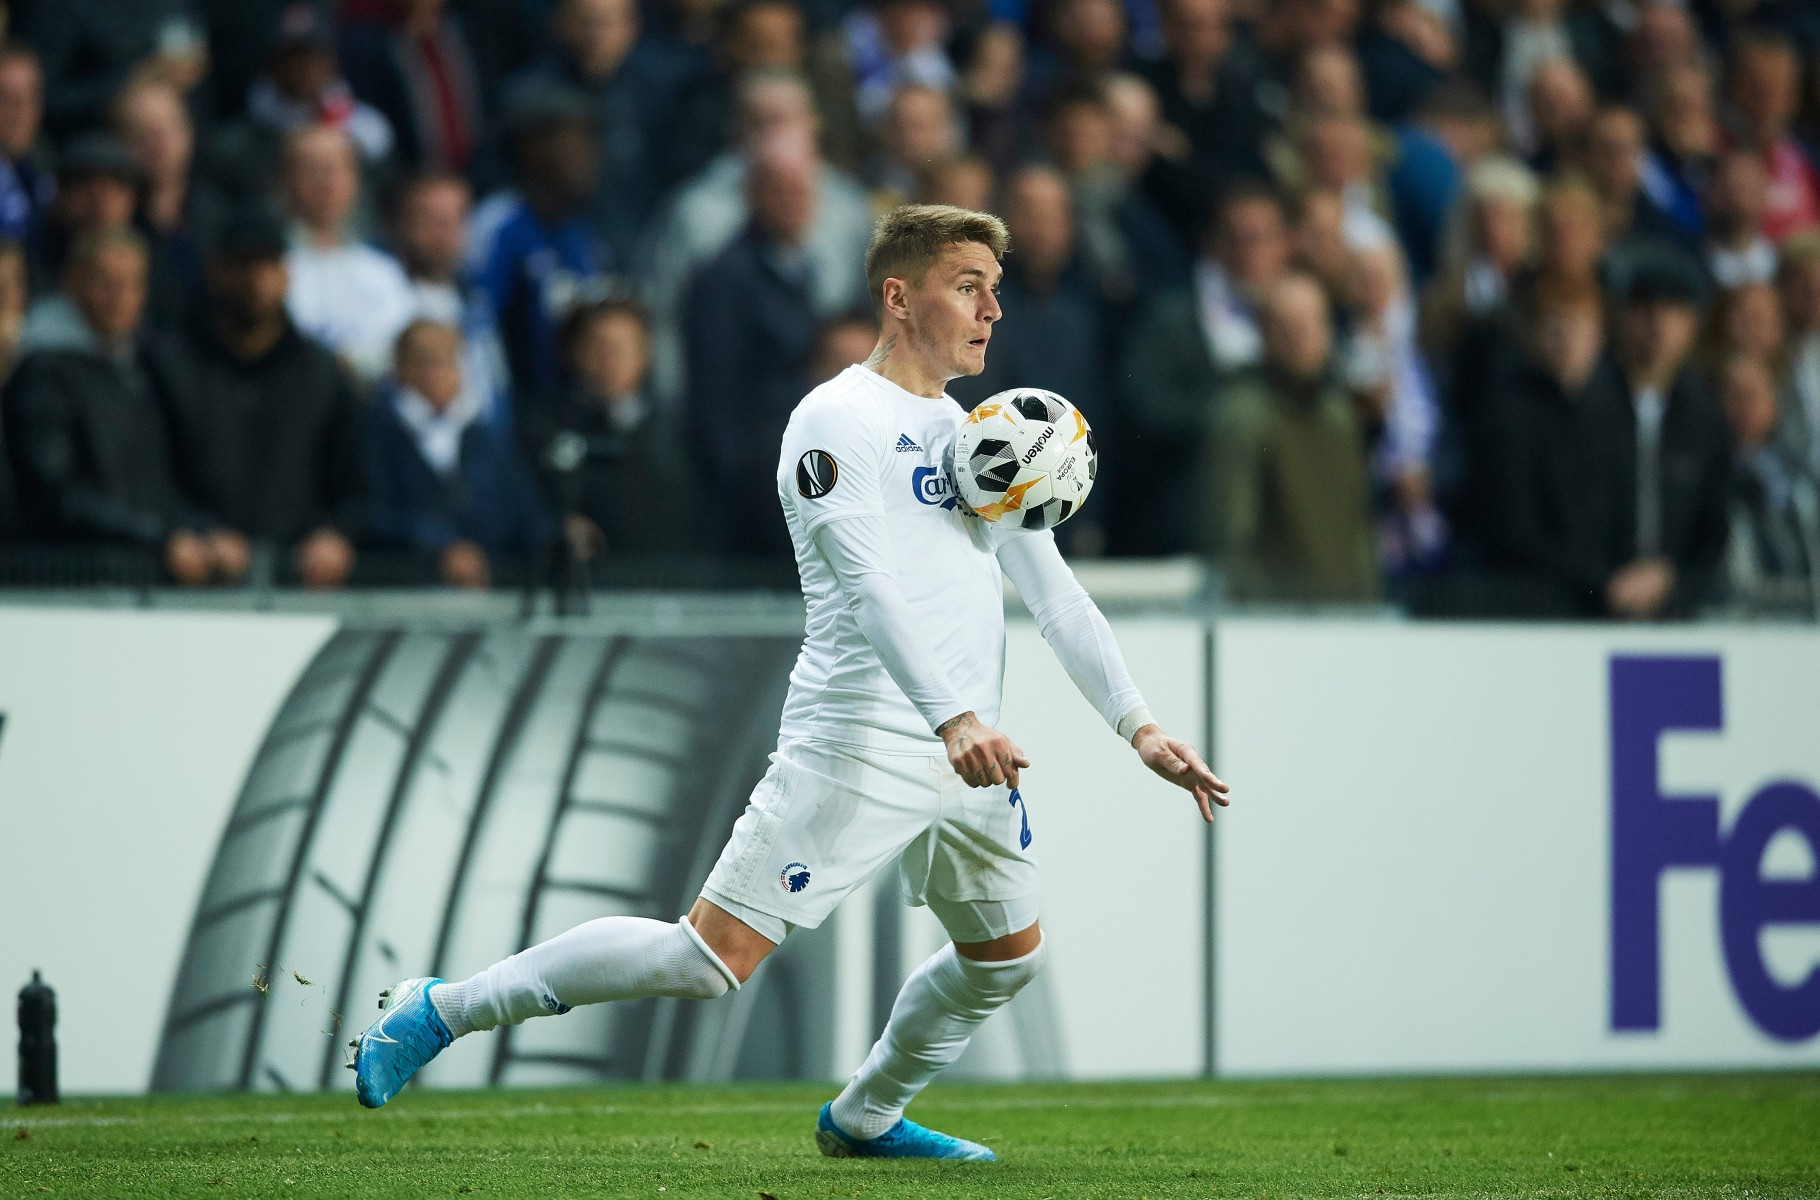 FC Copenhagen and Manchester United are both through to the knockout stages of the Europa League this season